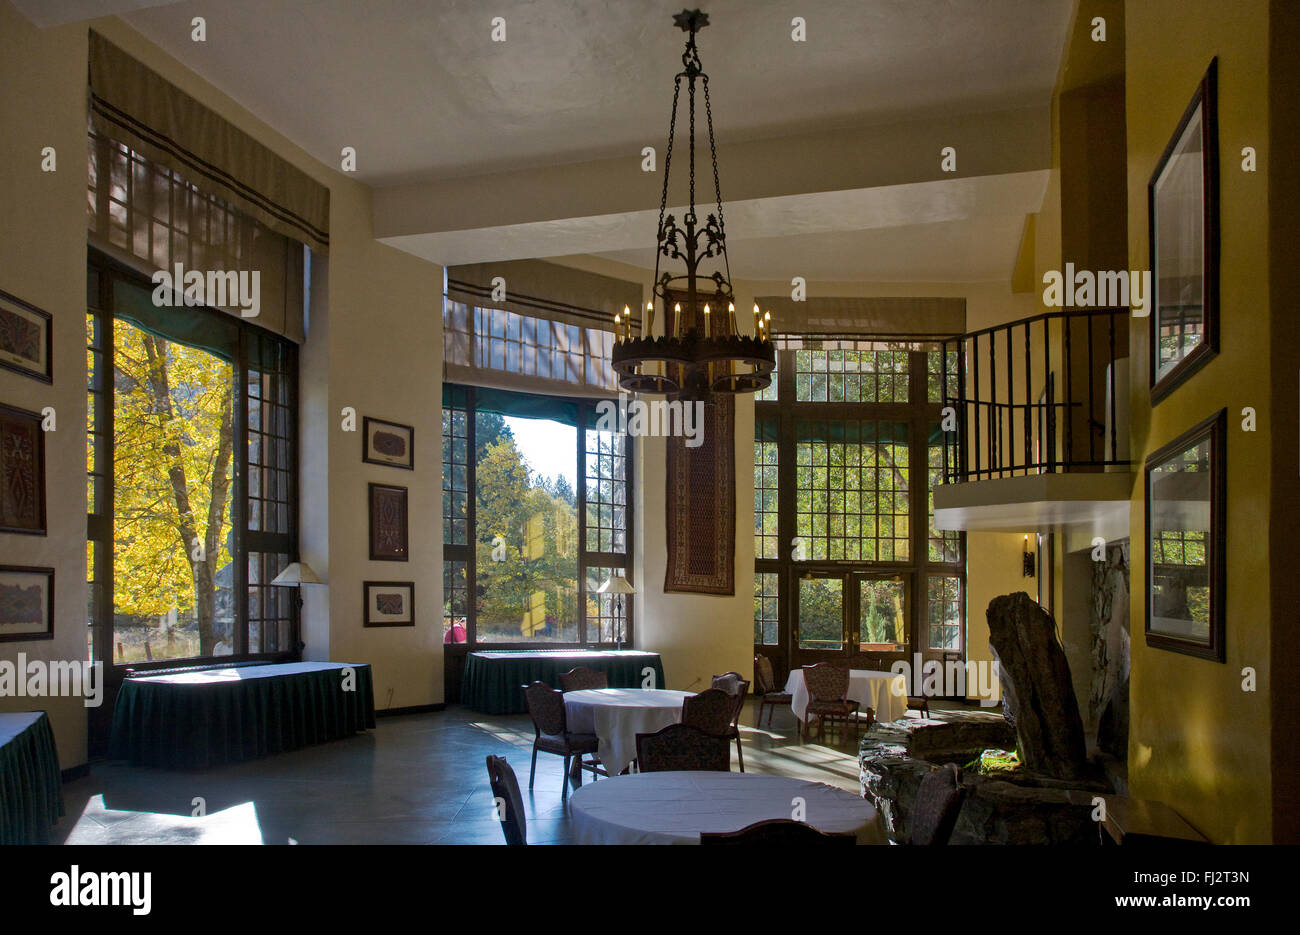 Interior of the AHWAHNEE HOTEL, built in 1925 and was designed by Stock Photo: 97178473 - Alamy